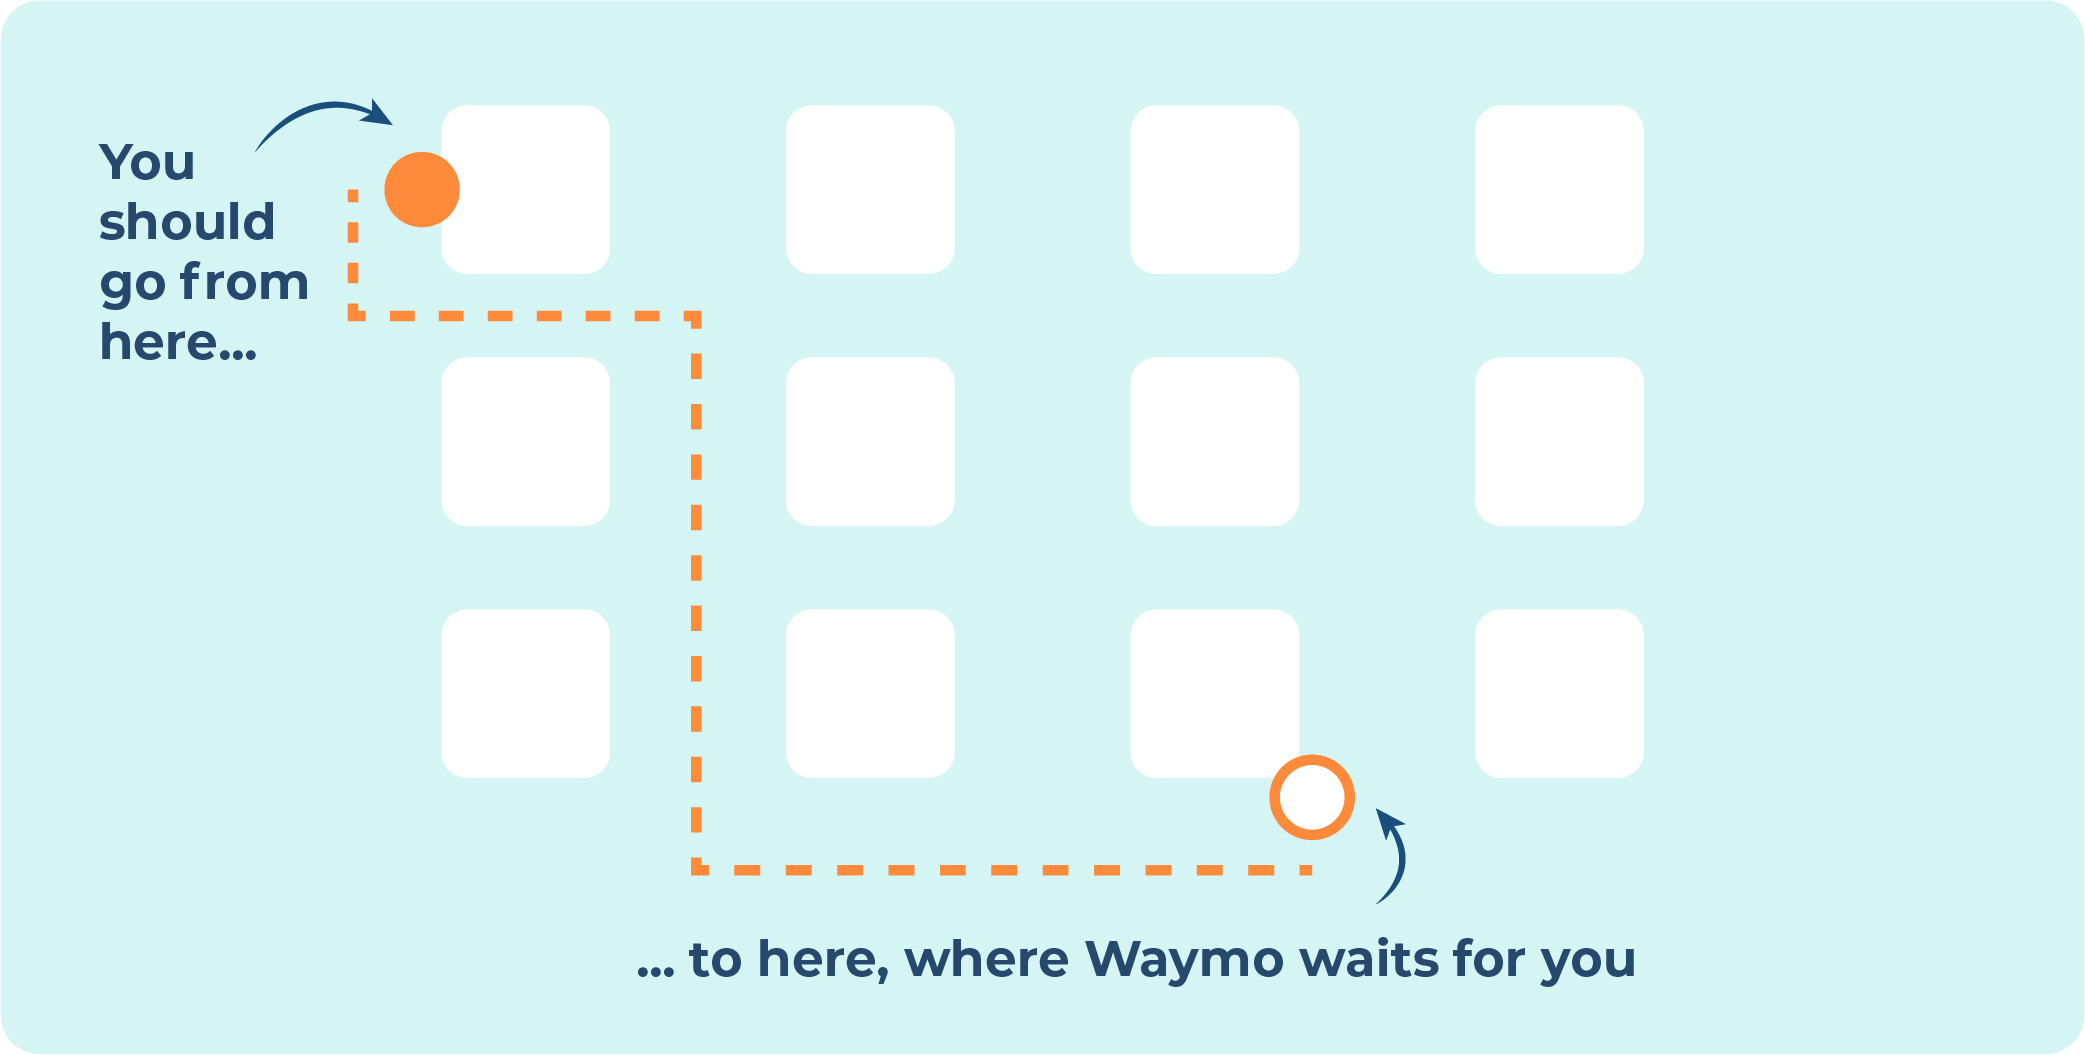 Waymo can park at the designated spots only